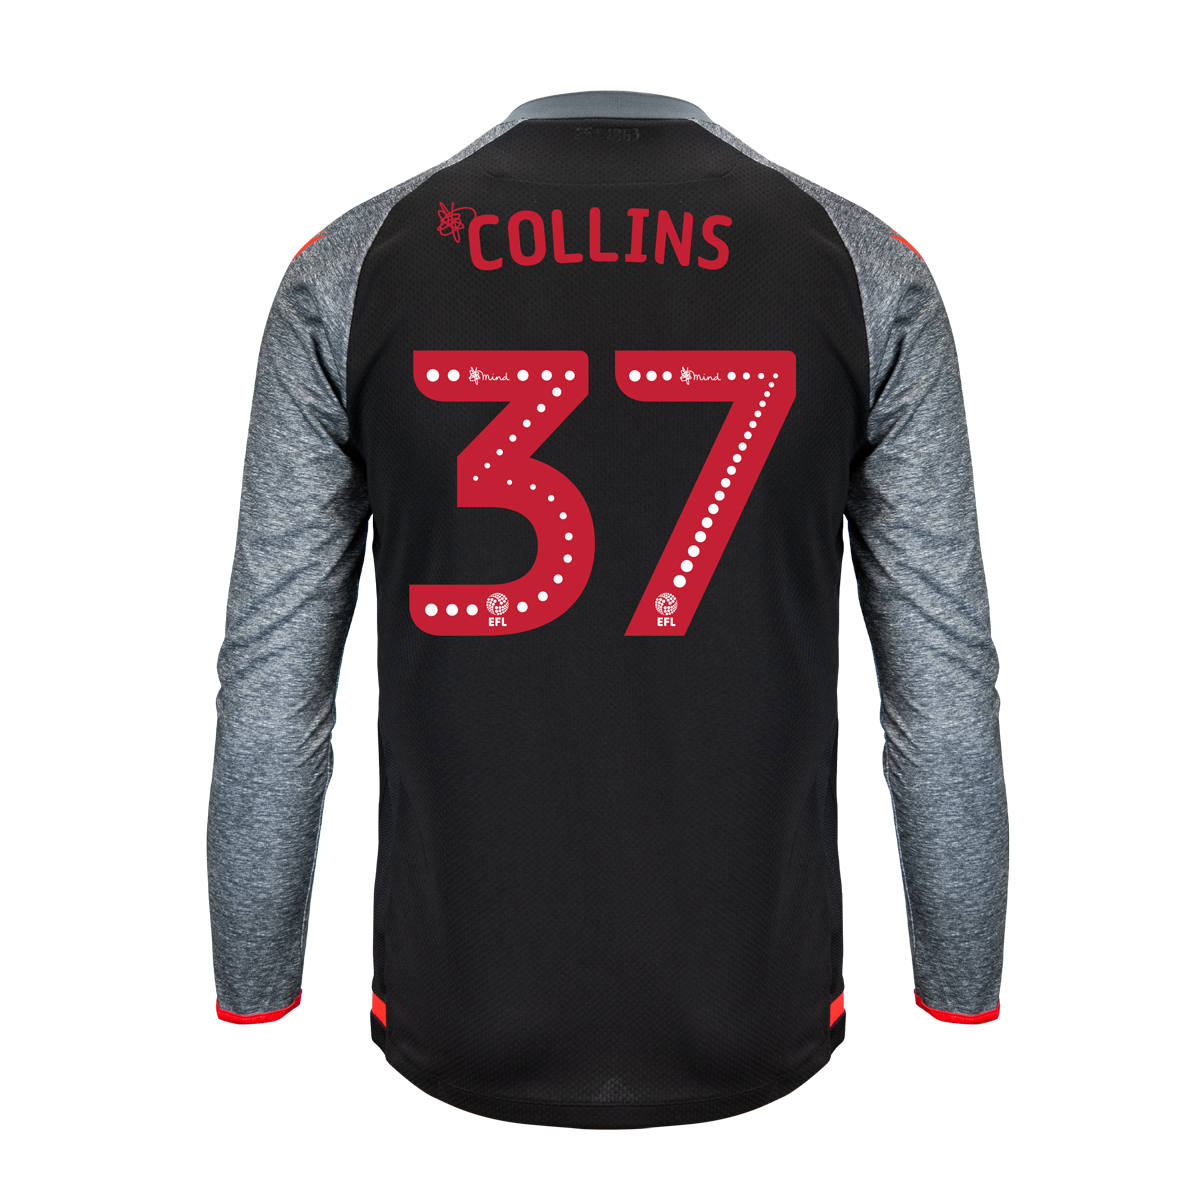 2019/20 Adult Away LS Shirt - Collins